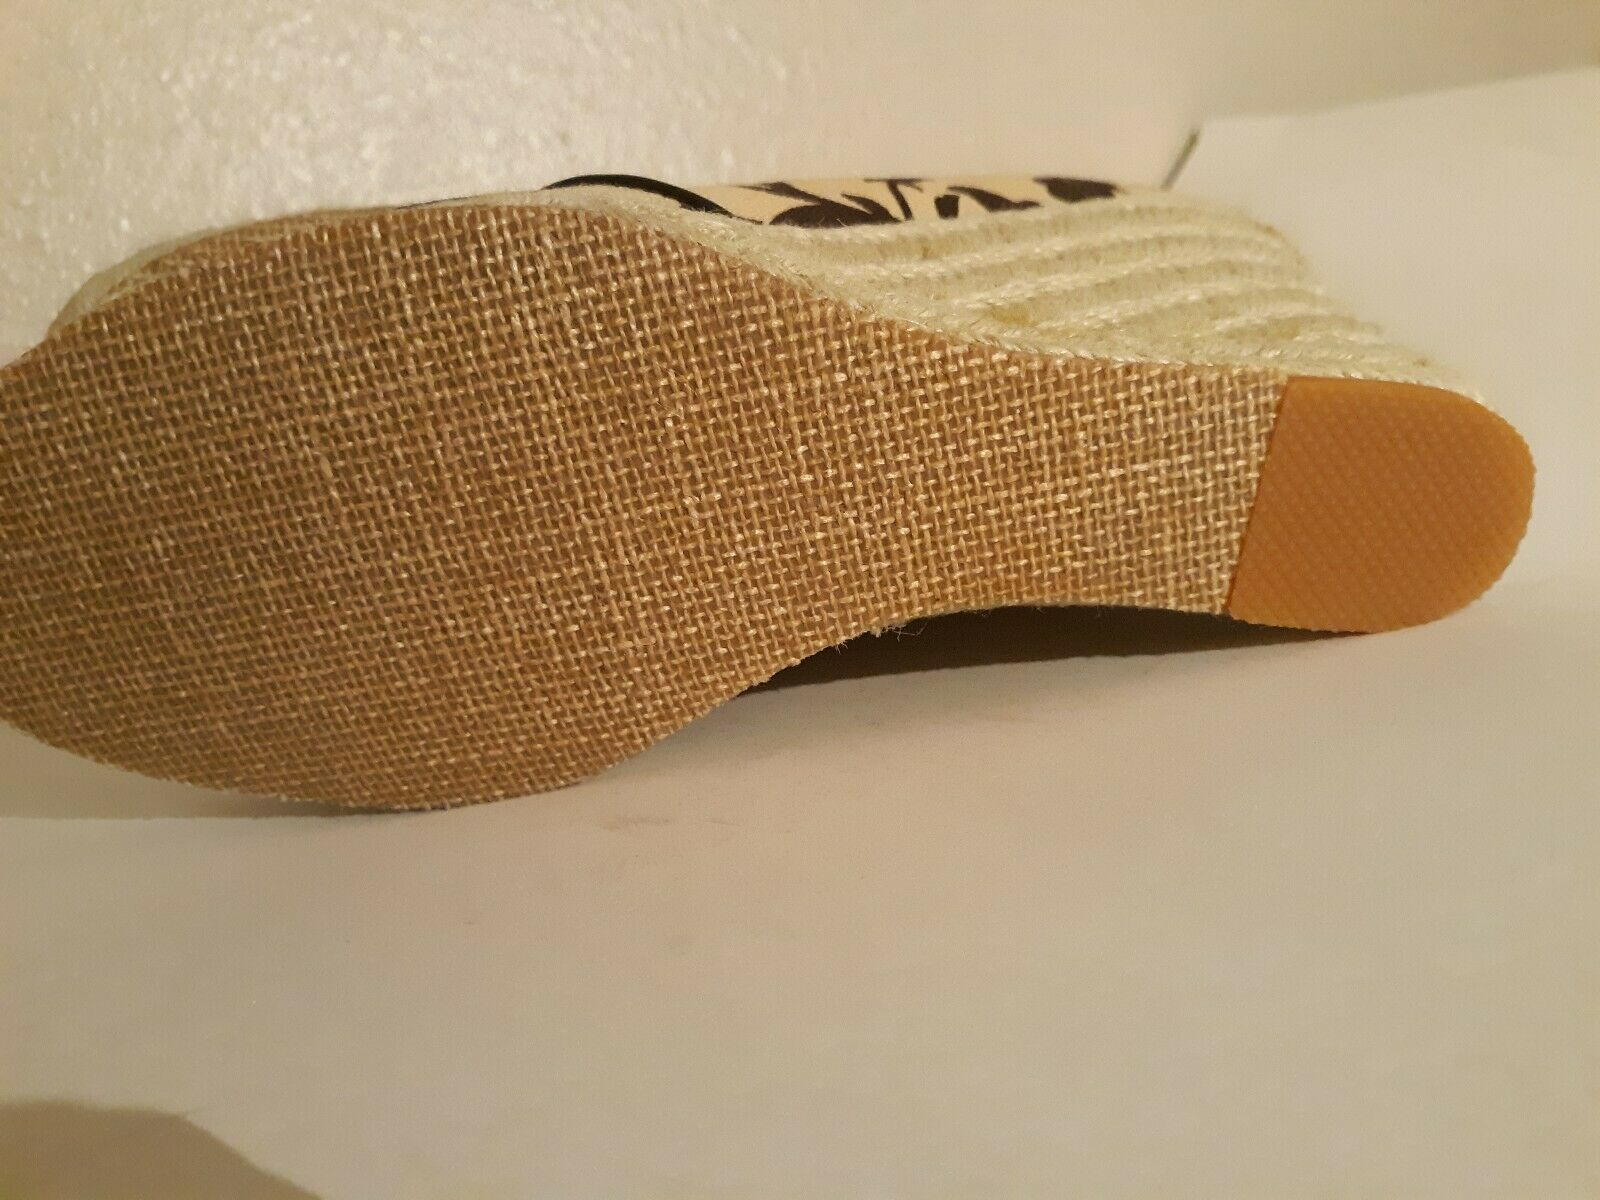 Tommy Hilfiger Tan Womens Size 8 open toe Wedges - image 9